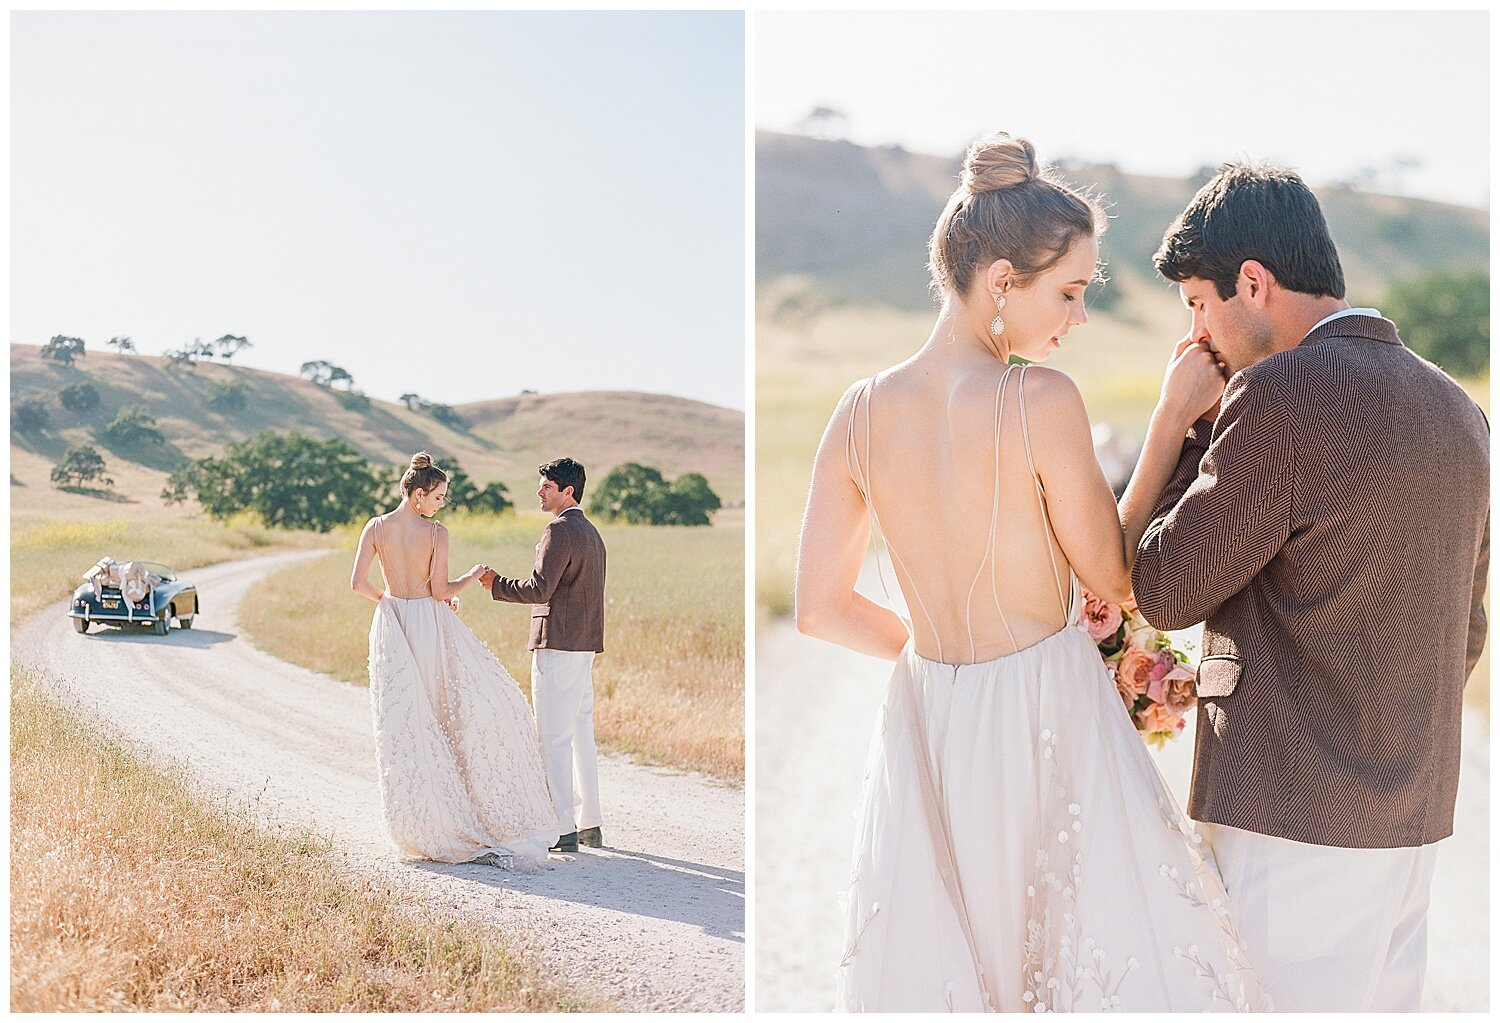 Janine_Licare_Photography_San_Francisco_Kestrel_Park_Santa_Ynez_Sunstone_Villa_Winer_Wedding_Photographer_Meadowood_Napa_Valley_Sonoma_0073.jpg